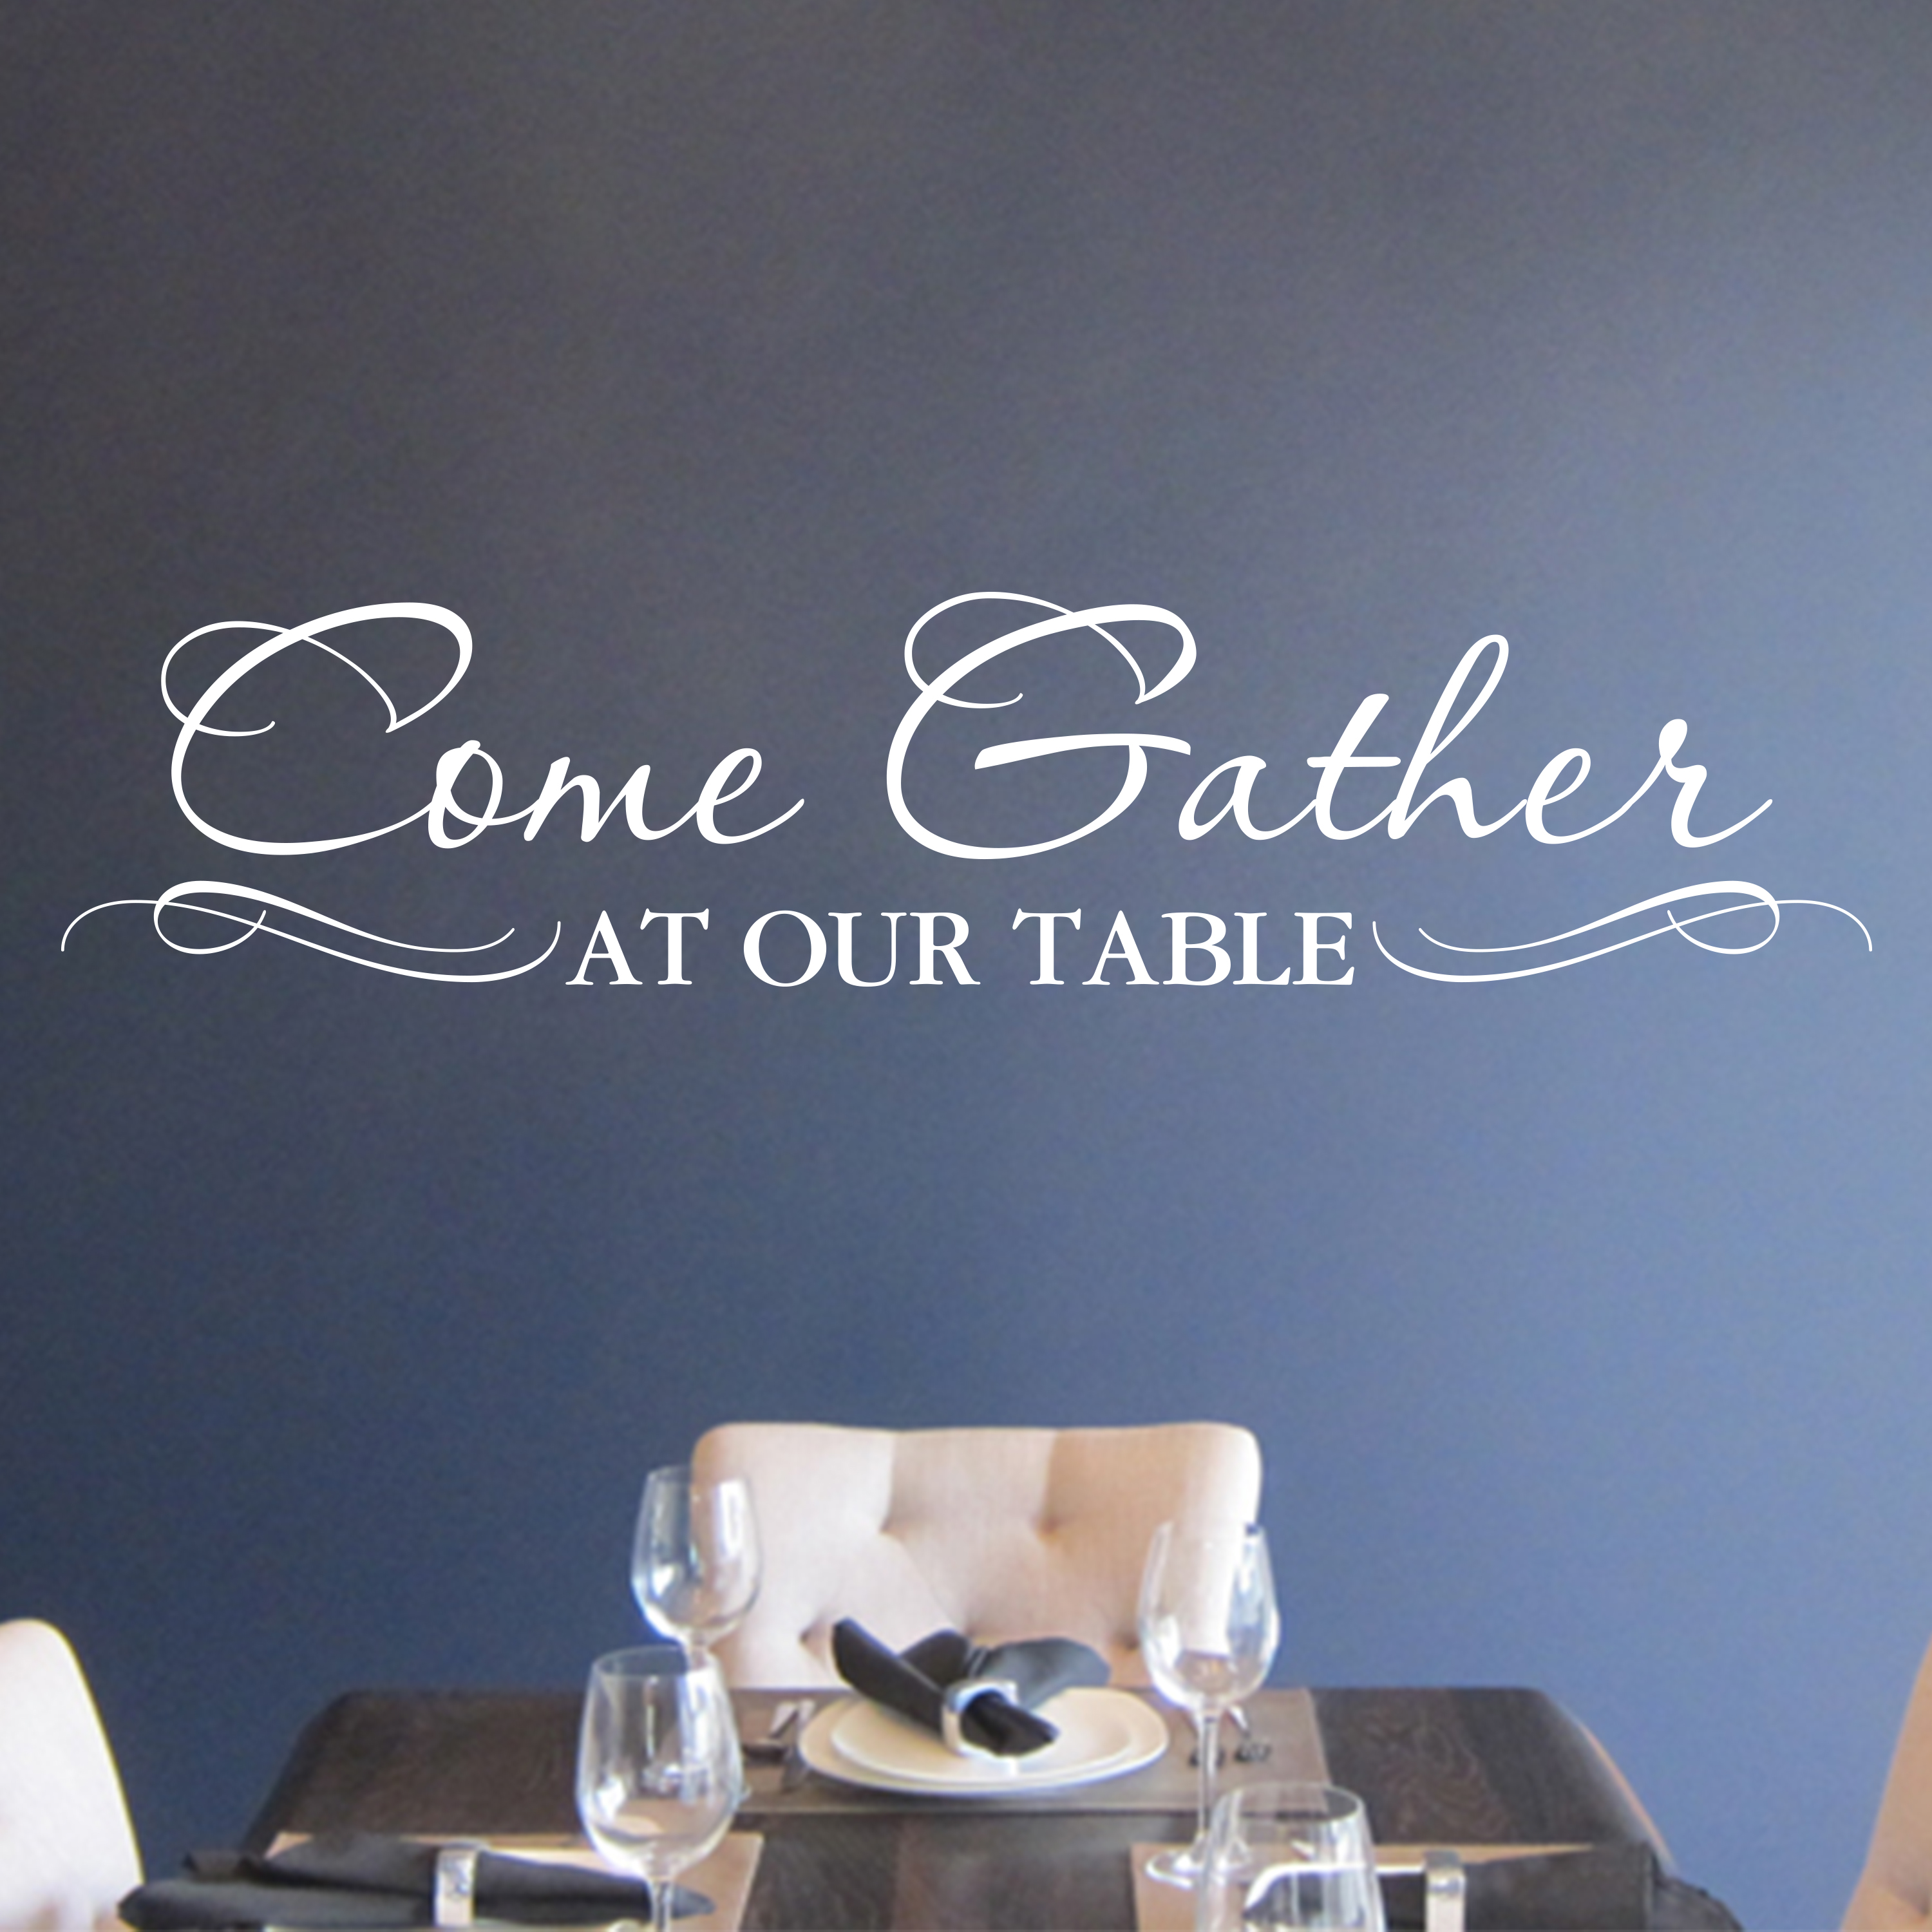 Come Gather At Our Table Vinyl Wall Decal By Wild Eyes Signs Kitchen Lettering Dining Room Decor Breakfast Nook Sticker Sign